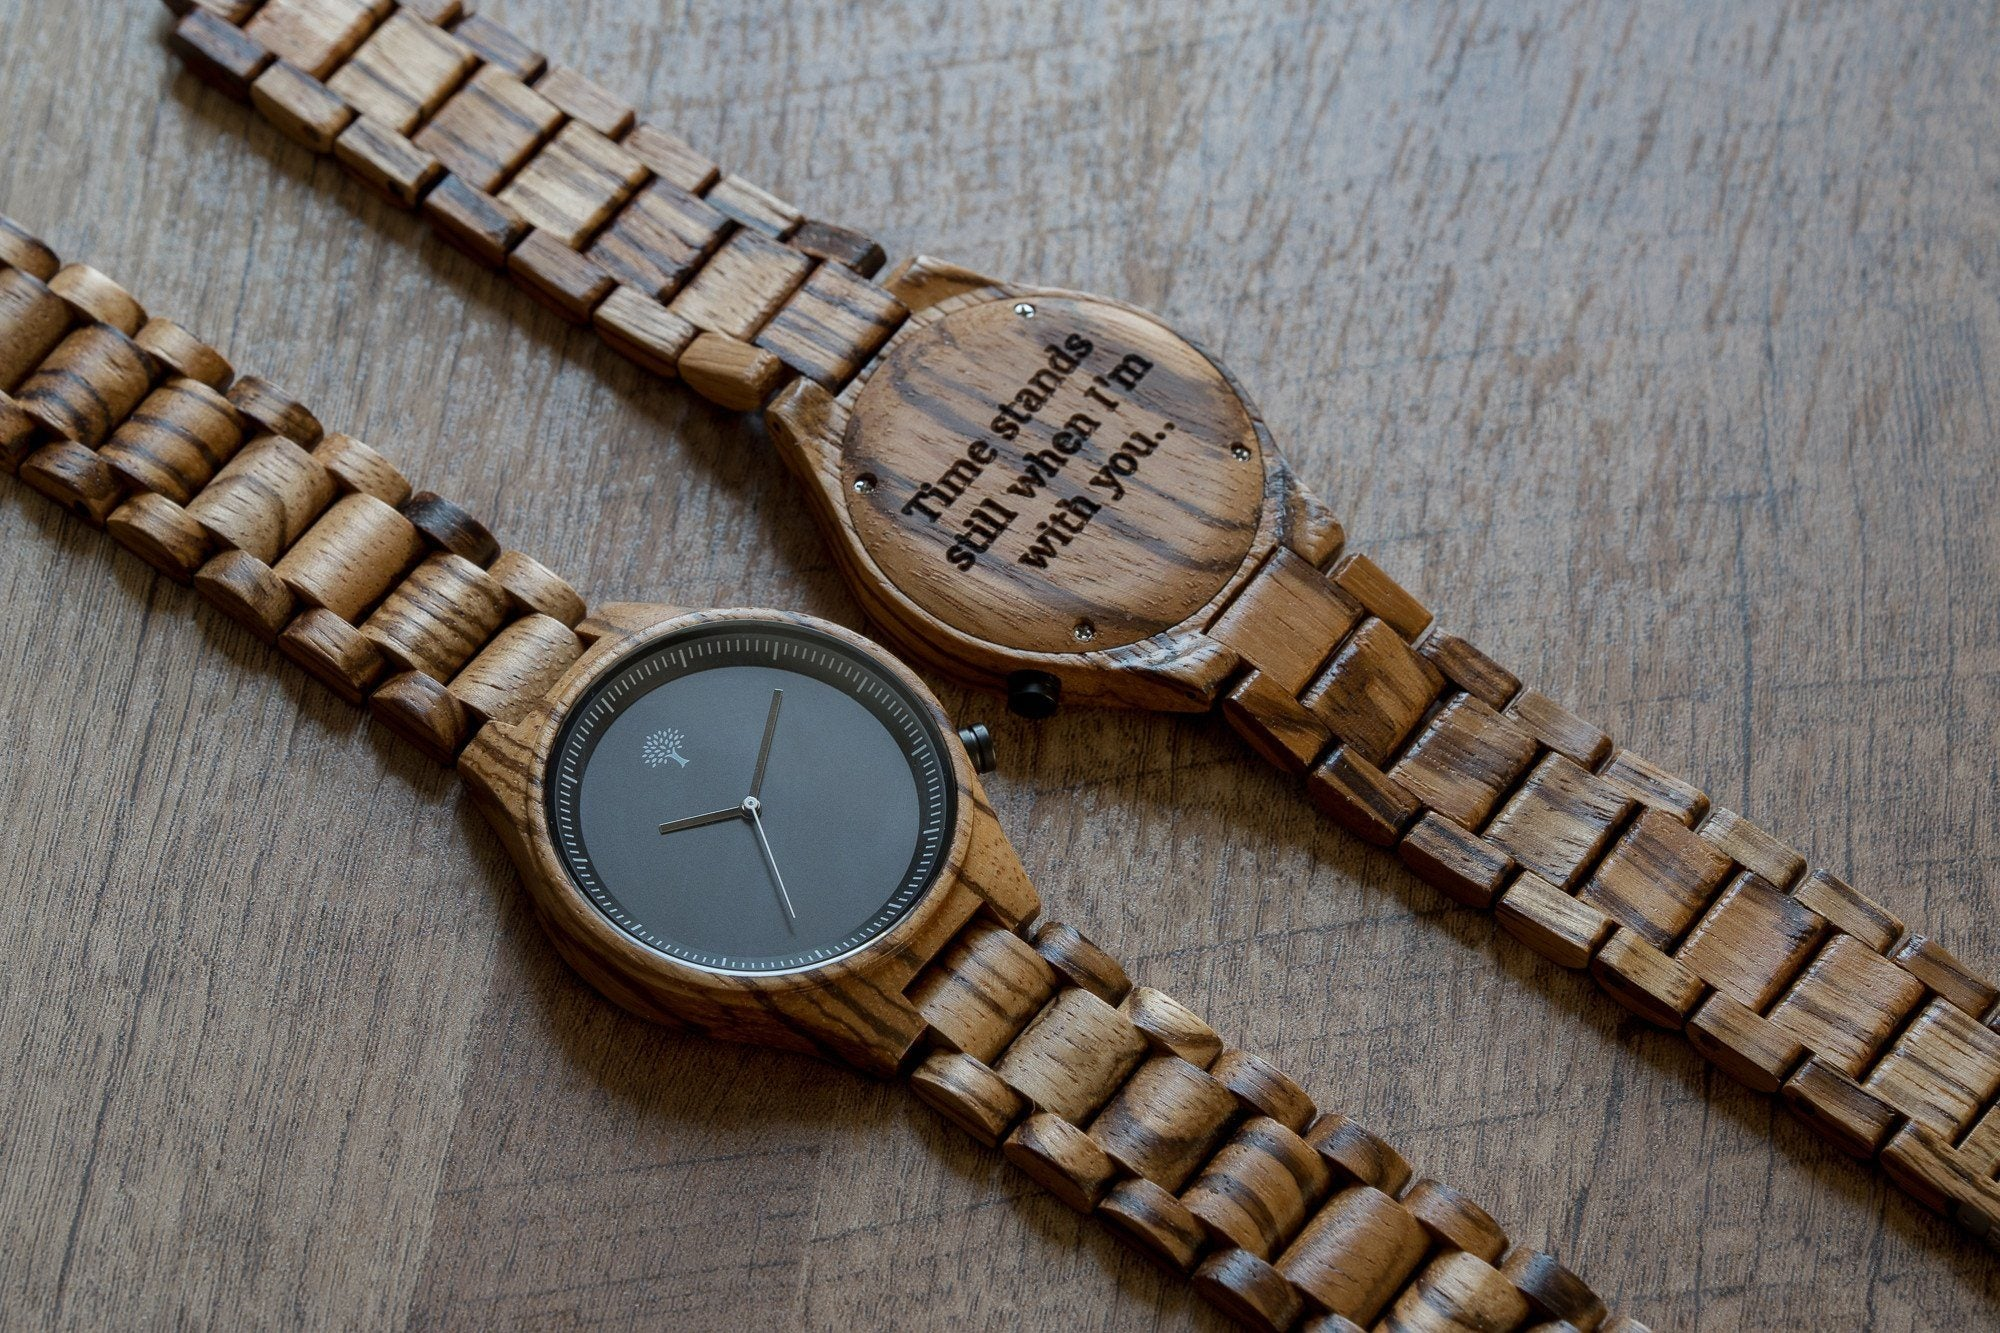 s item custom watch wood design sihaixin in elegant from analog japanese women bamboo quality for female quartz clock personalized strap casual her leather high watches with wooden lifestyle miytor